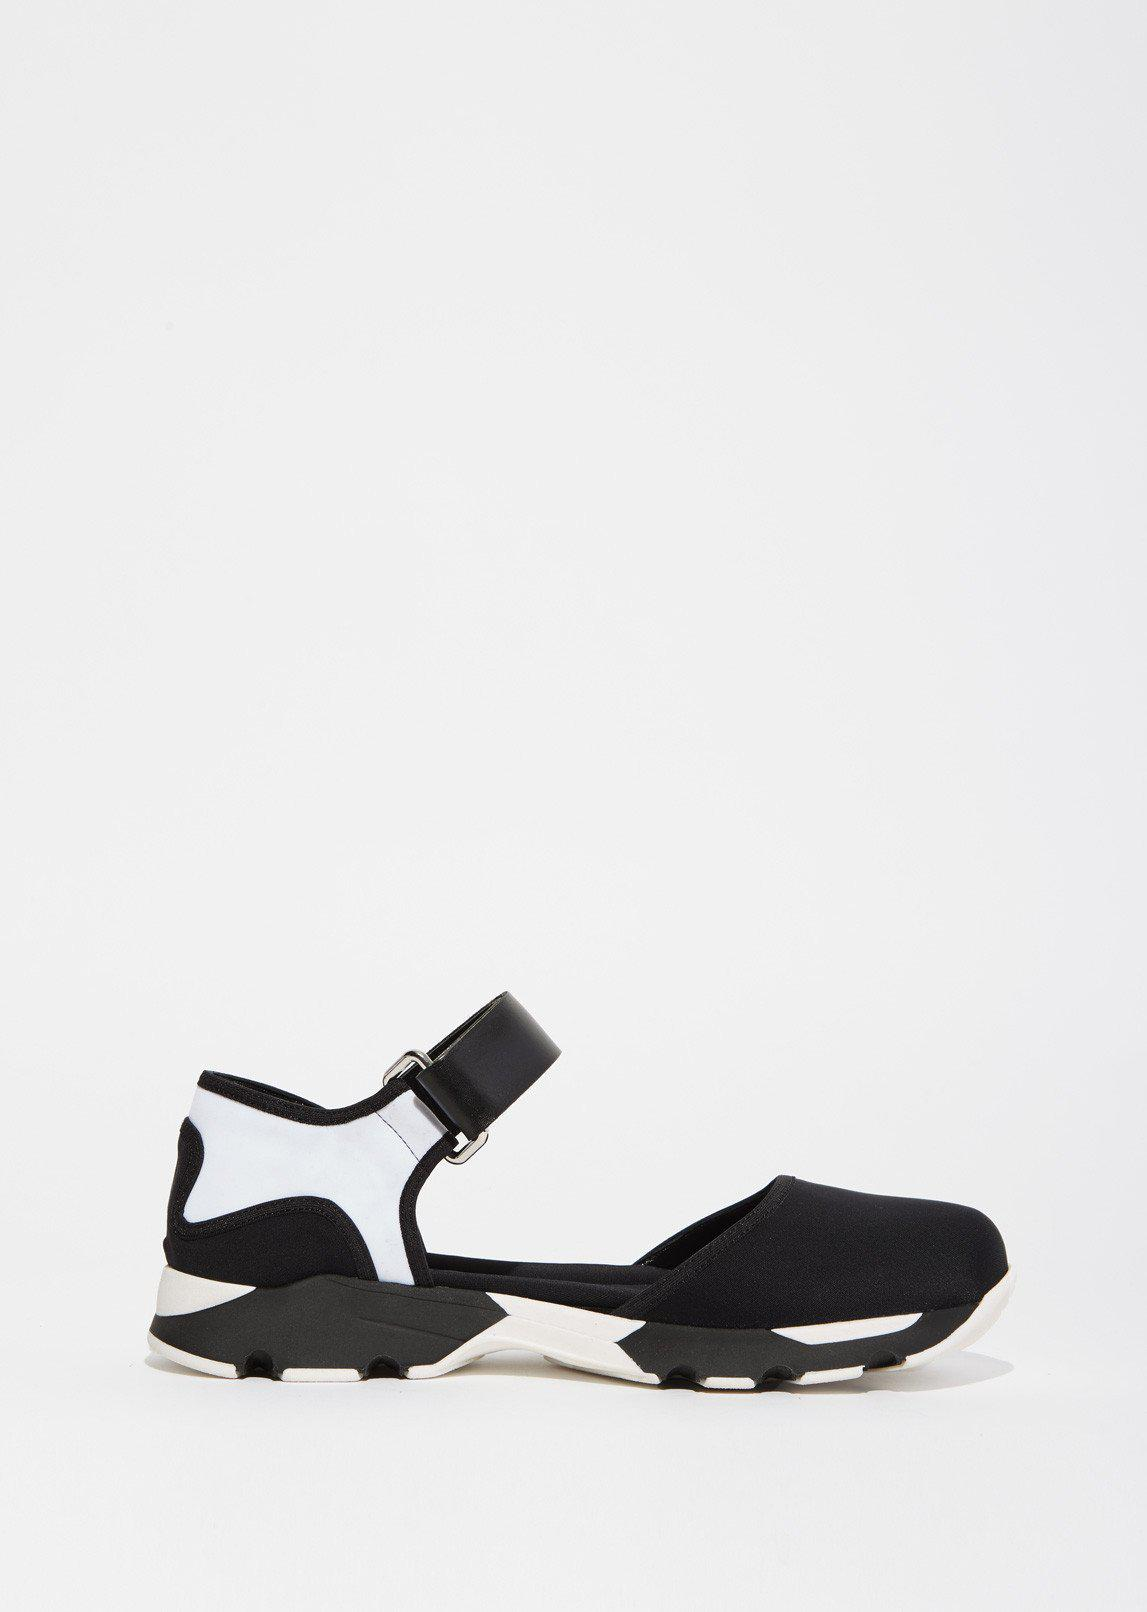 Marni Cotton Mary Jane Sneakers in